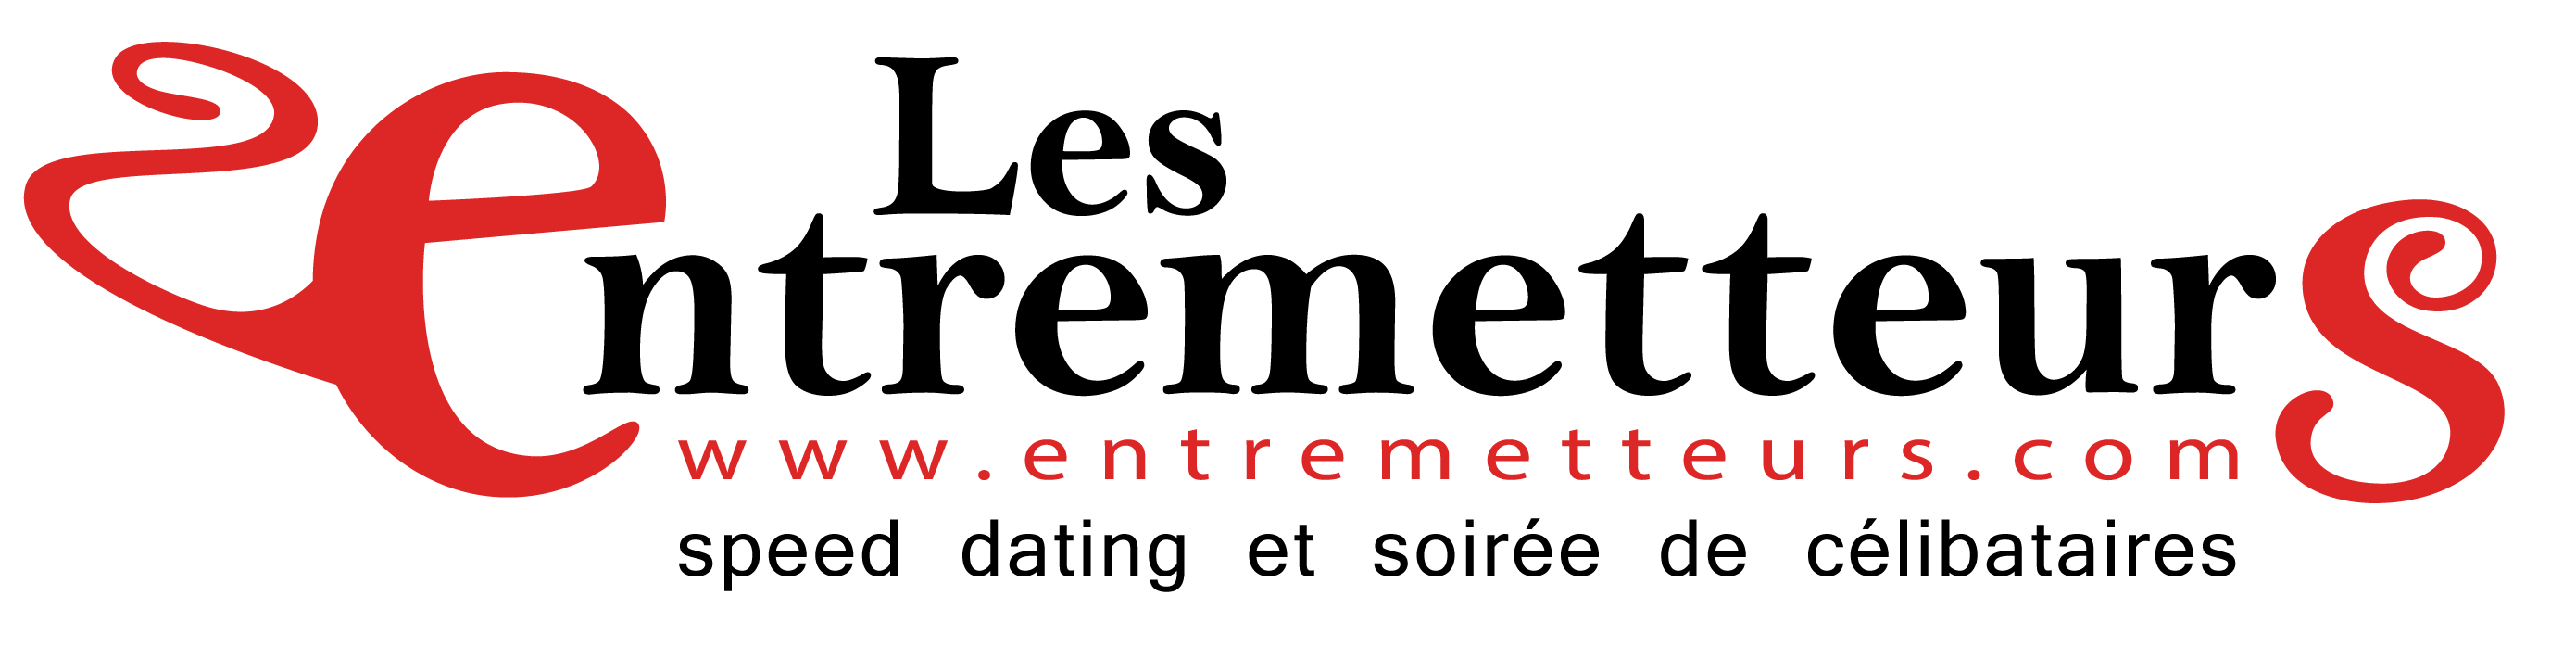 entremetteurs speed dating